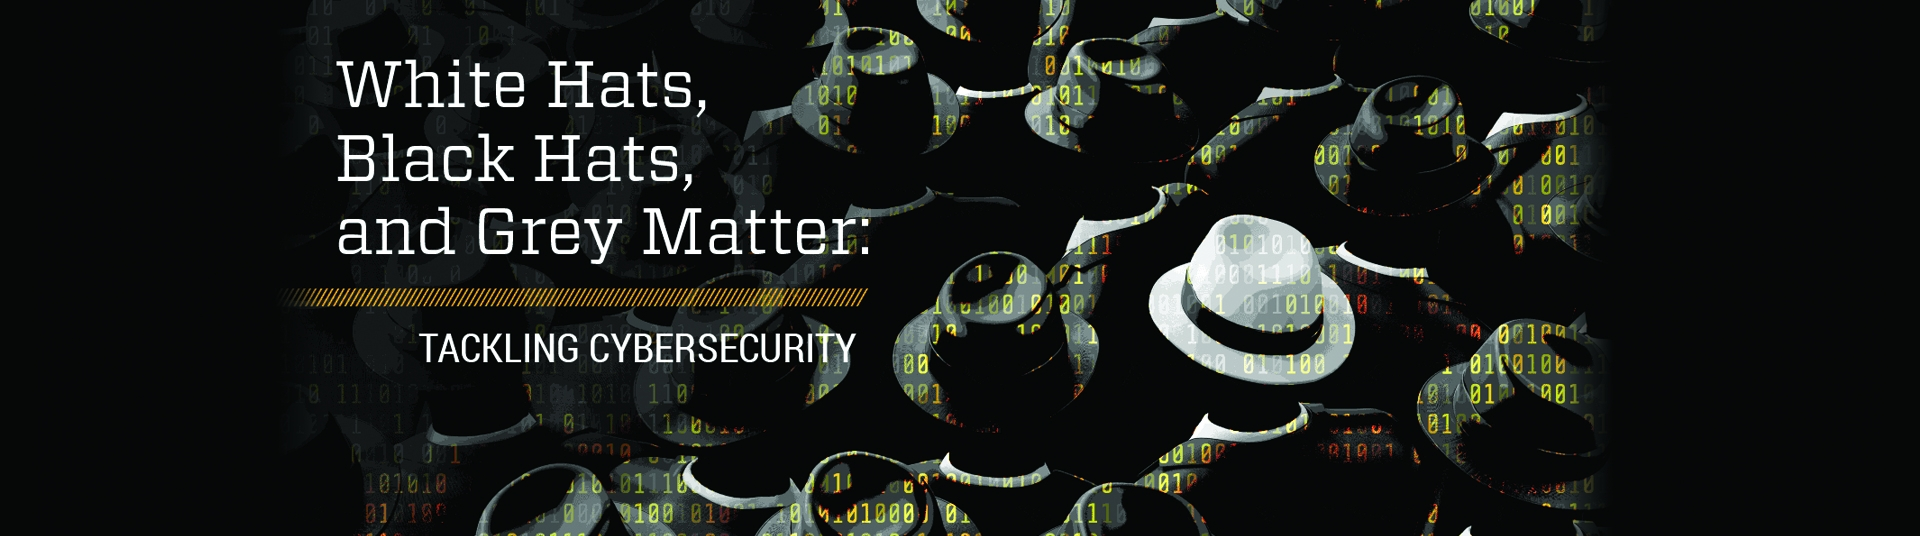 Georgia Tech Cybersecurity_White Hats Black Hats Grey Matter